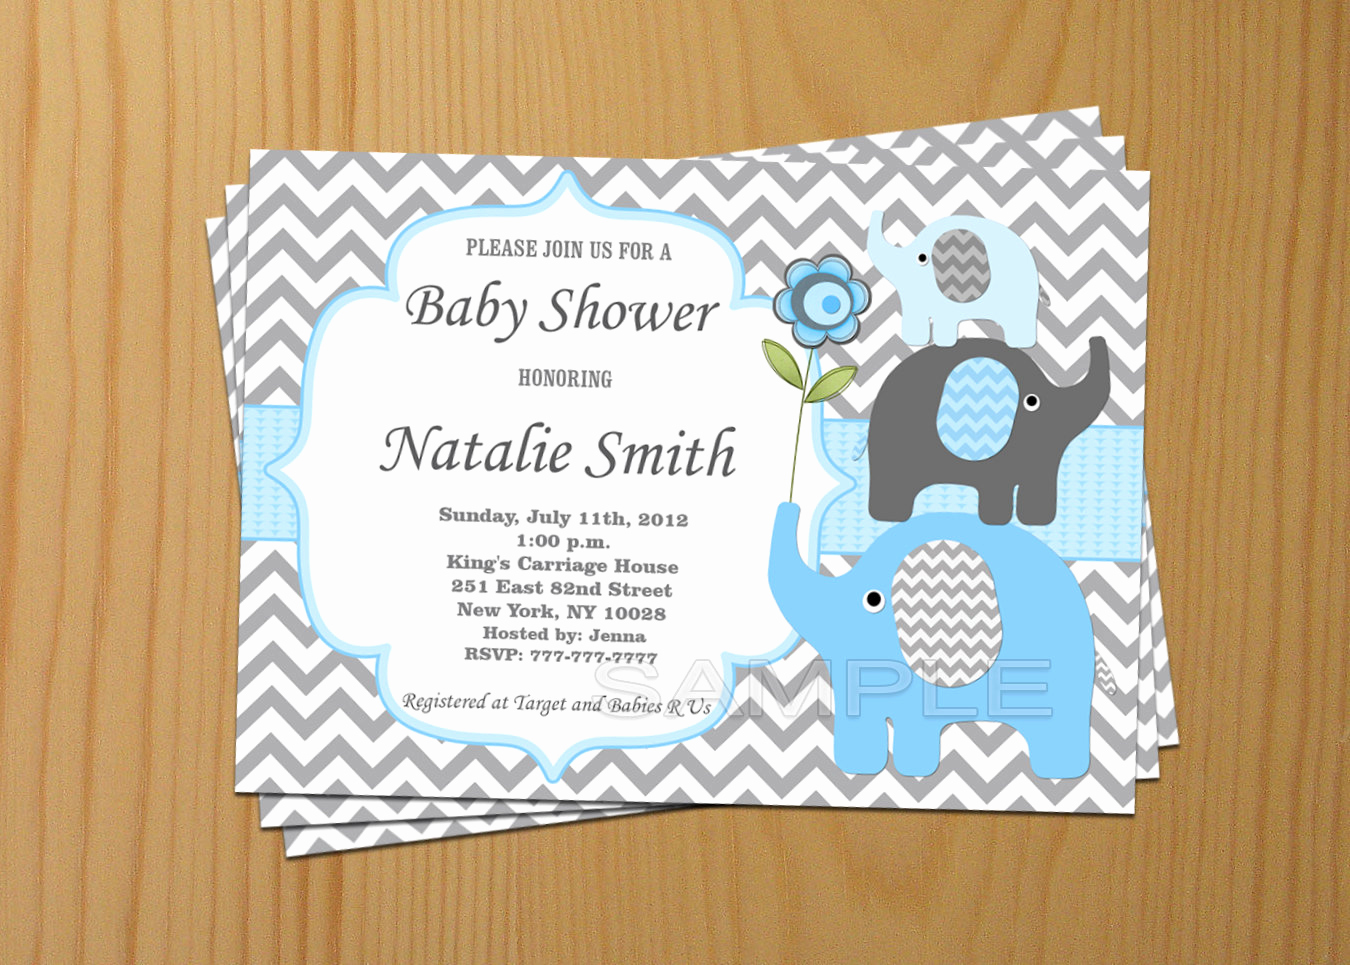 Elephant Invitation Baby Shower Inspirational Baby Shower Invitation Elephant Baby Shower Invitation Boy